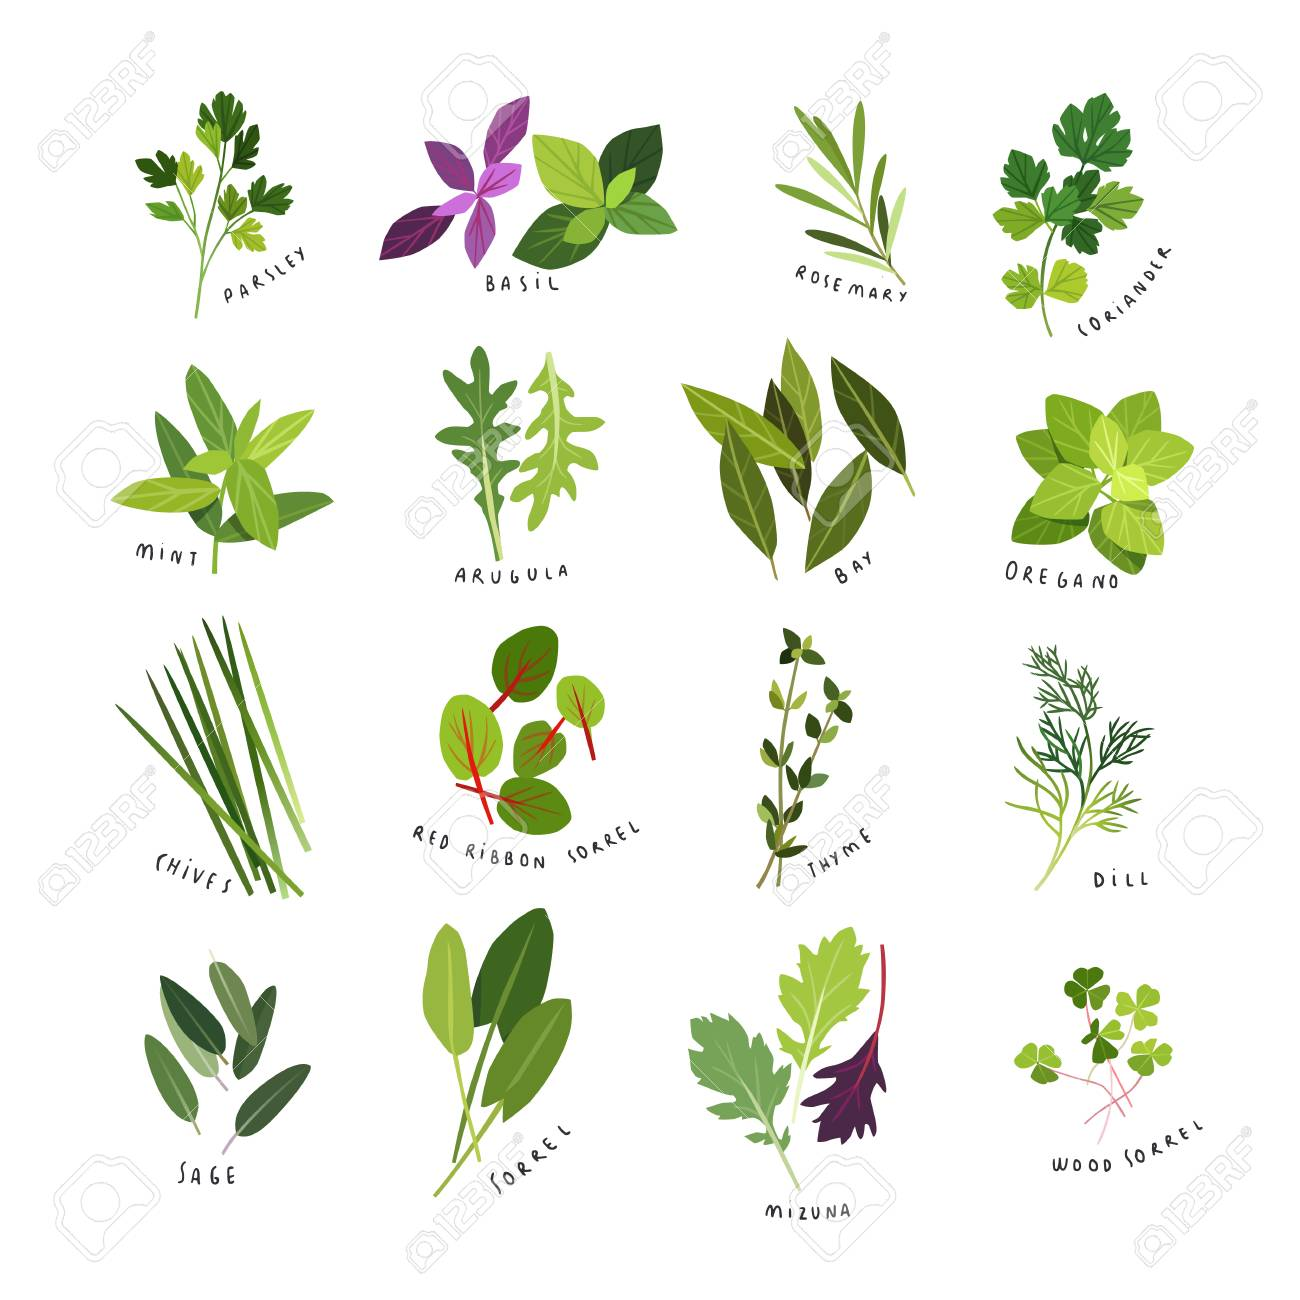 Clip art illustrations of herbs and spices. - 96619938